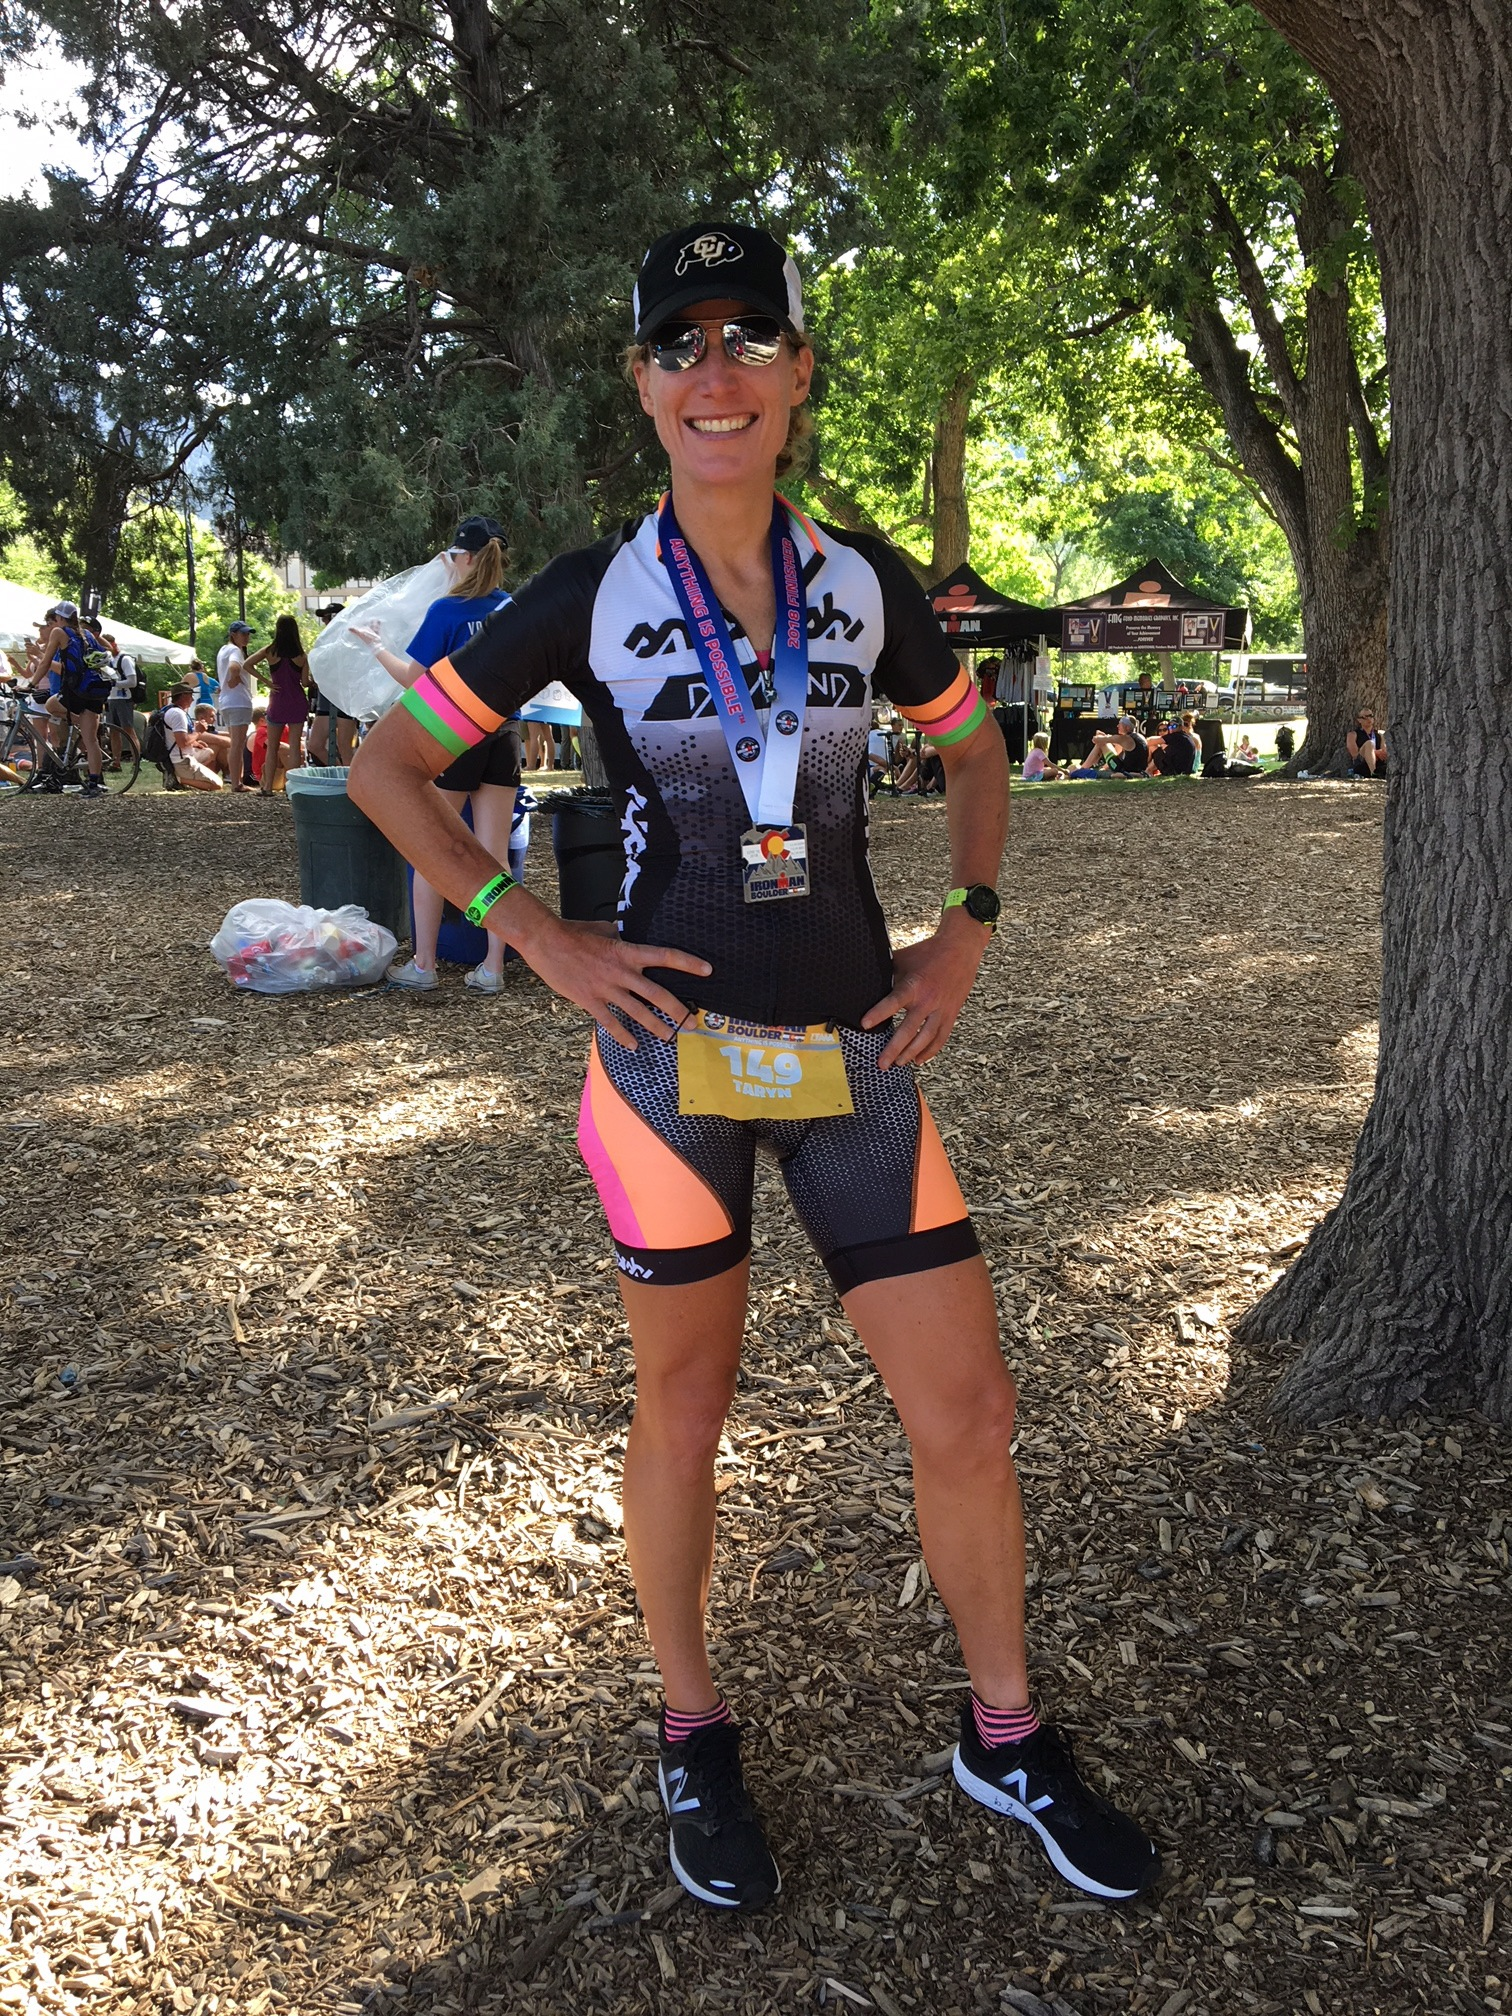 Classic hands-on-hips post race photo.